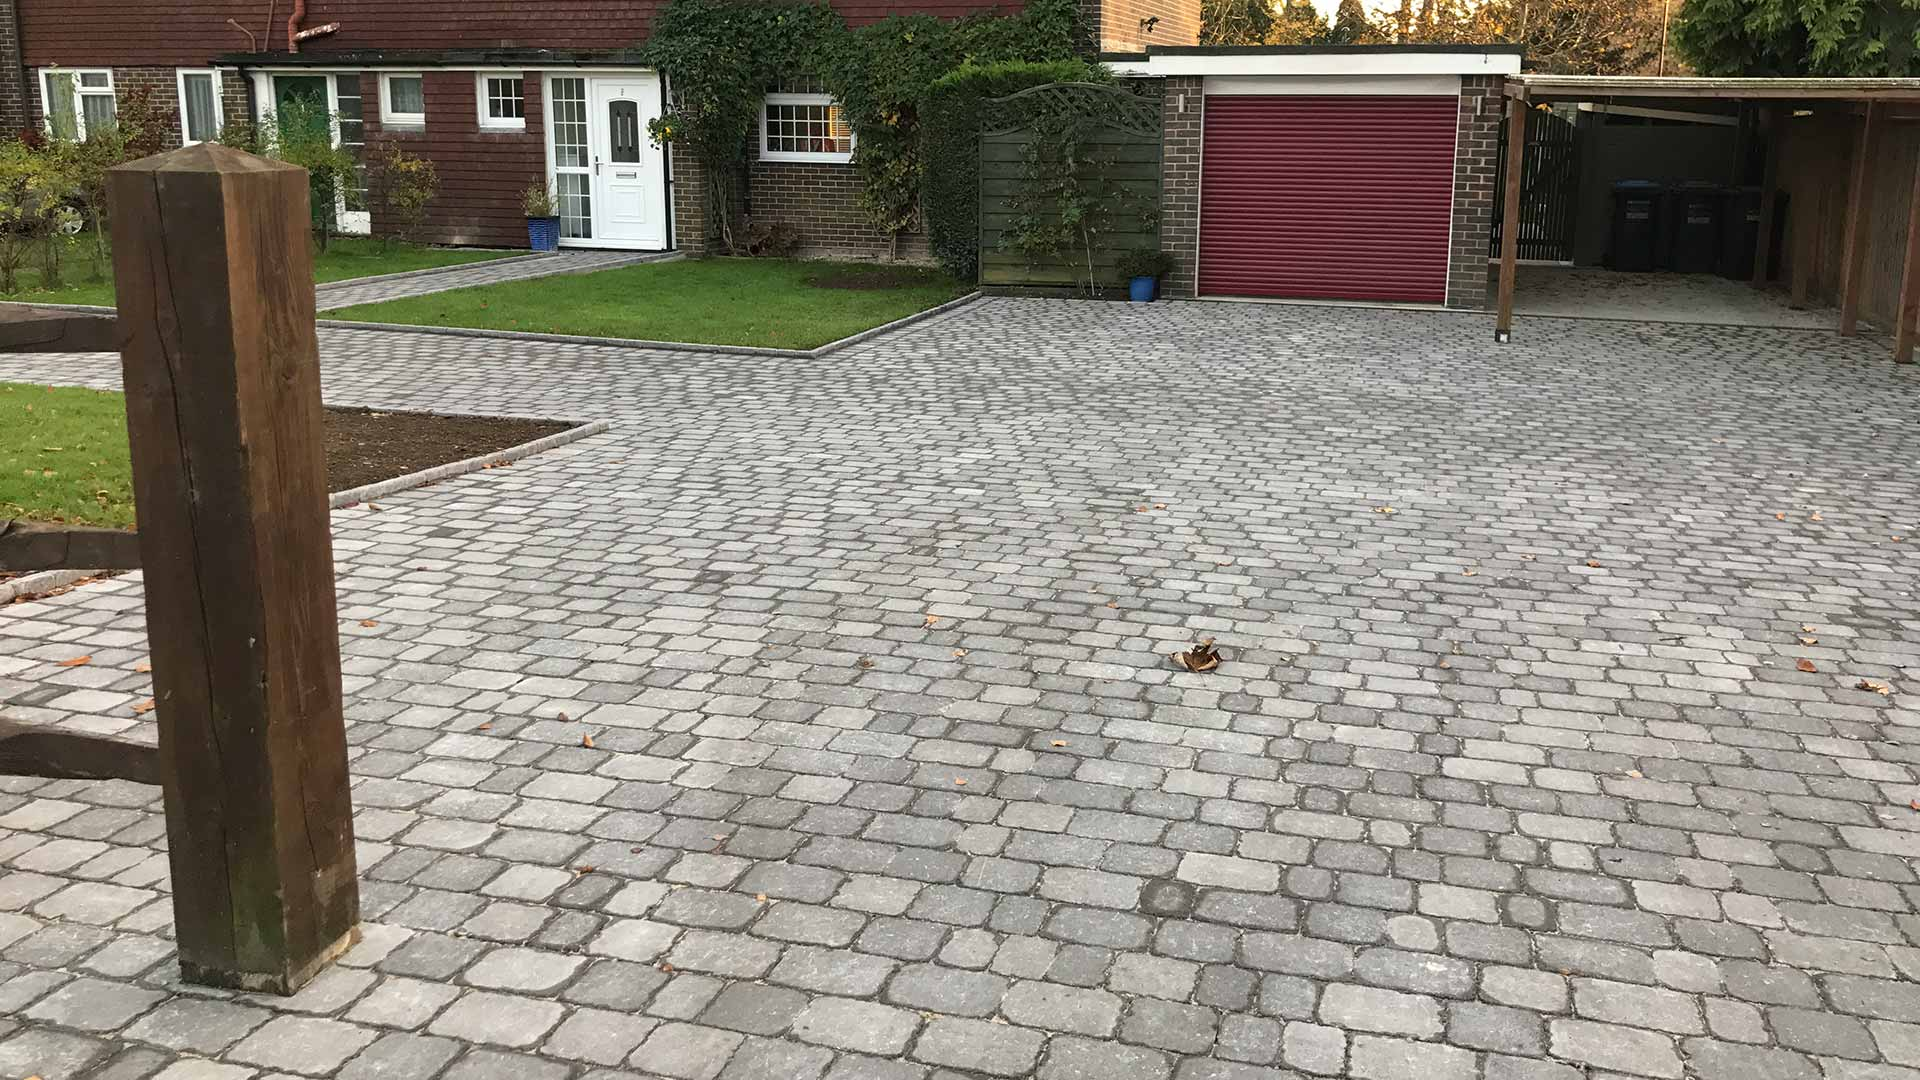 Driveway - Hardy Paving West Sussex